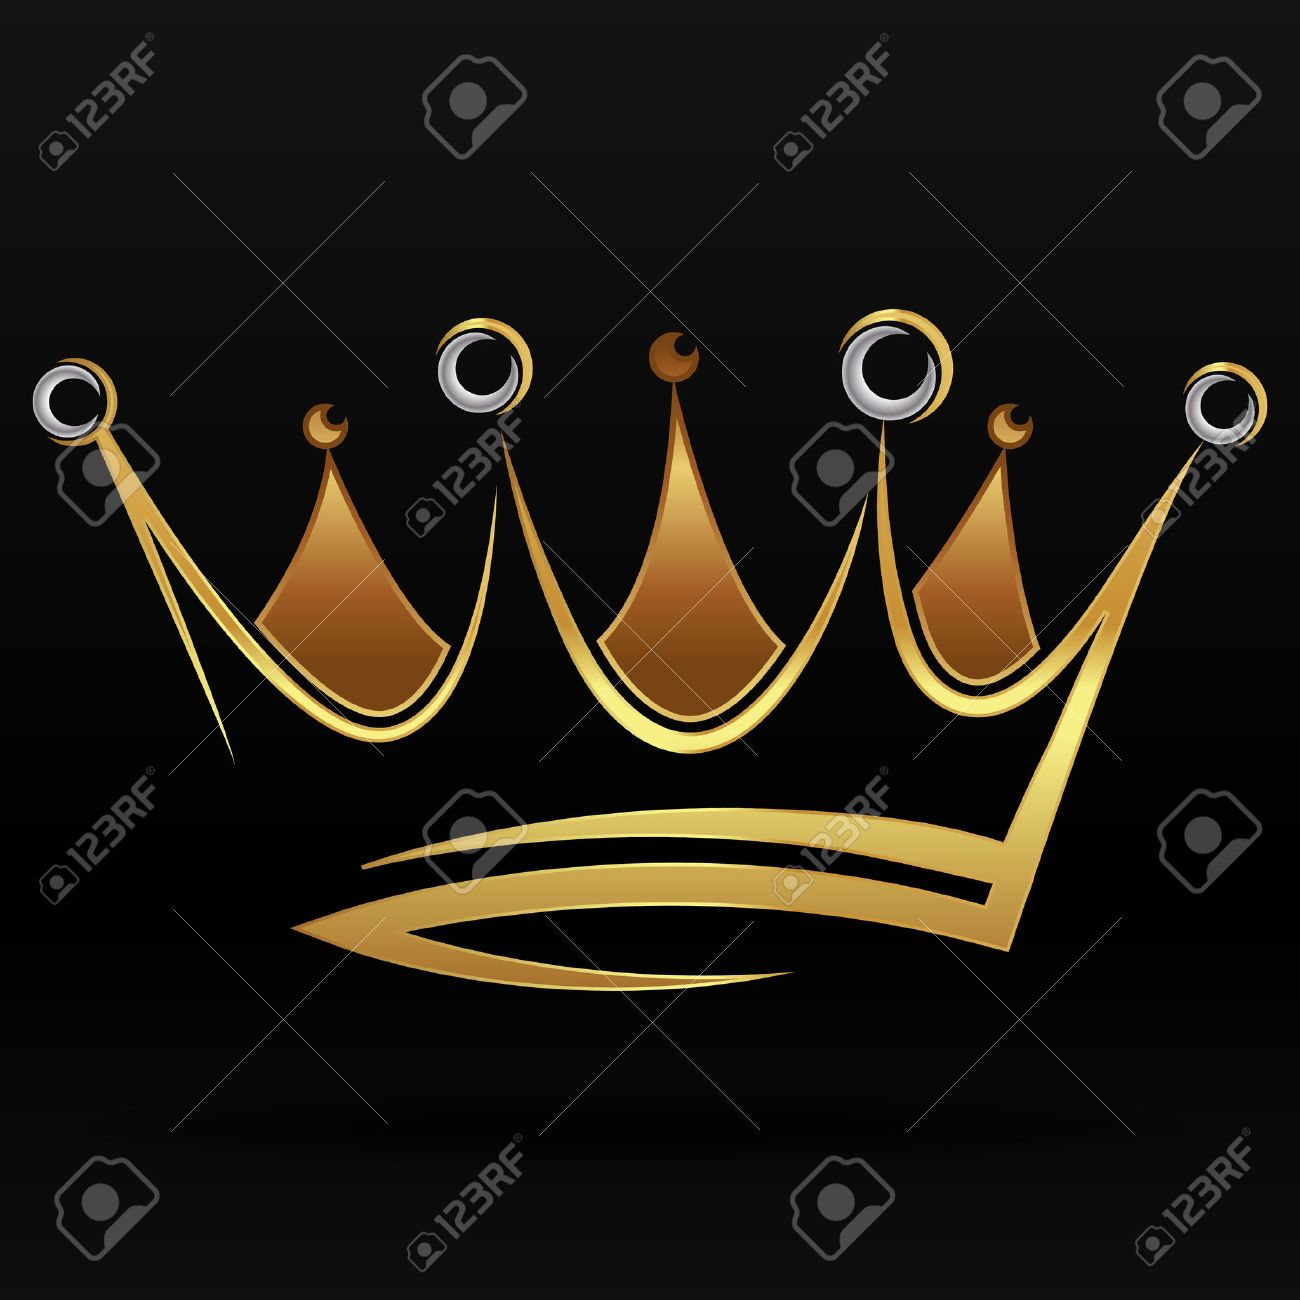 Gold abstract crown for graphic design and logo on black background - 49902291